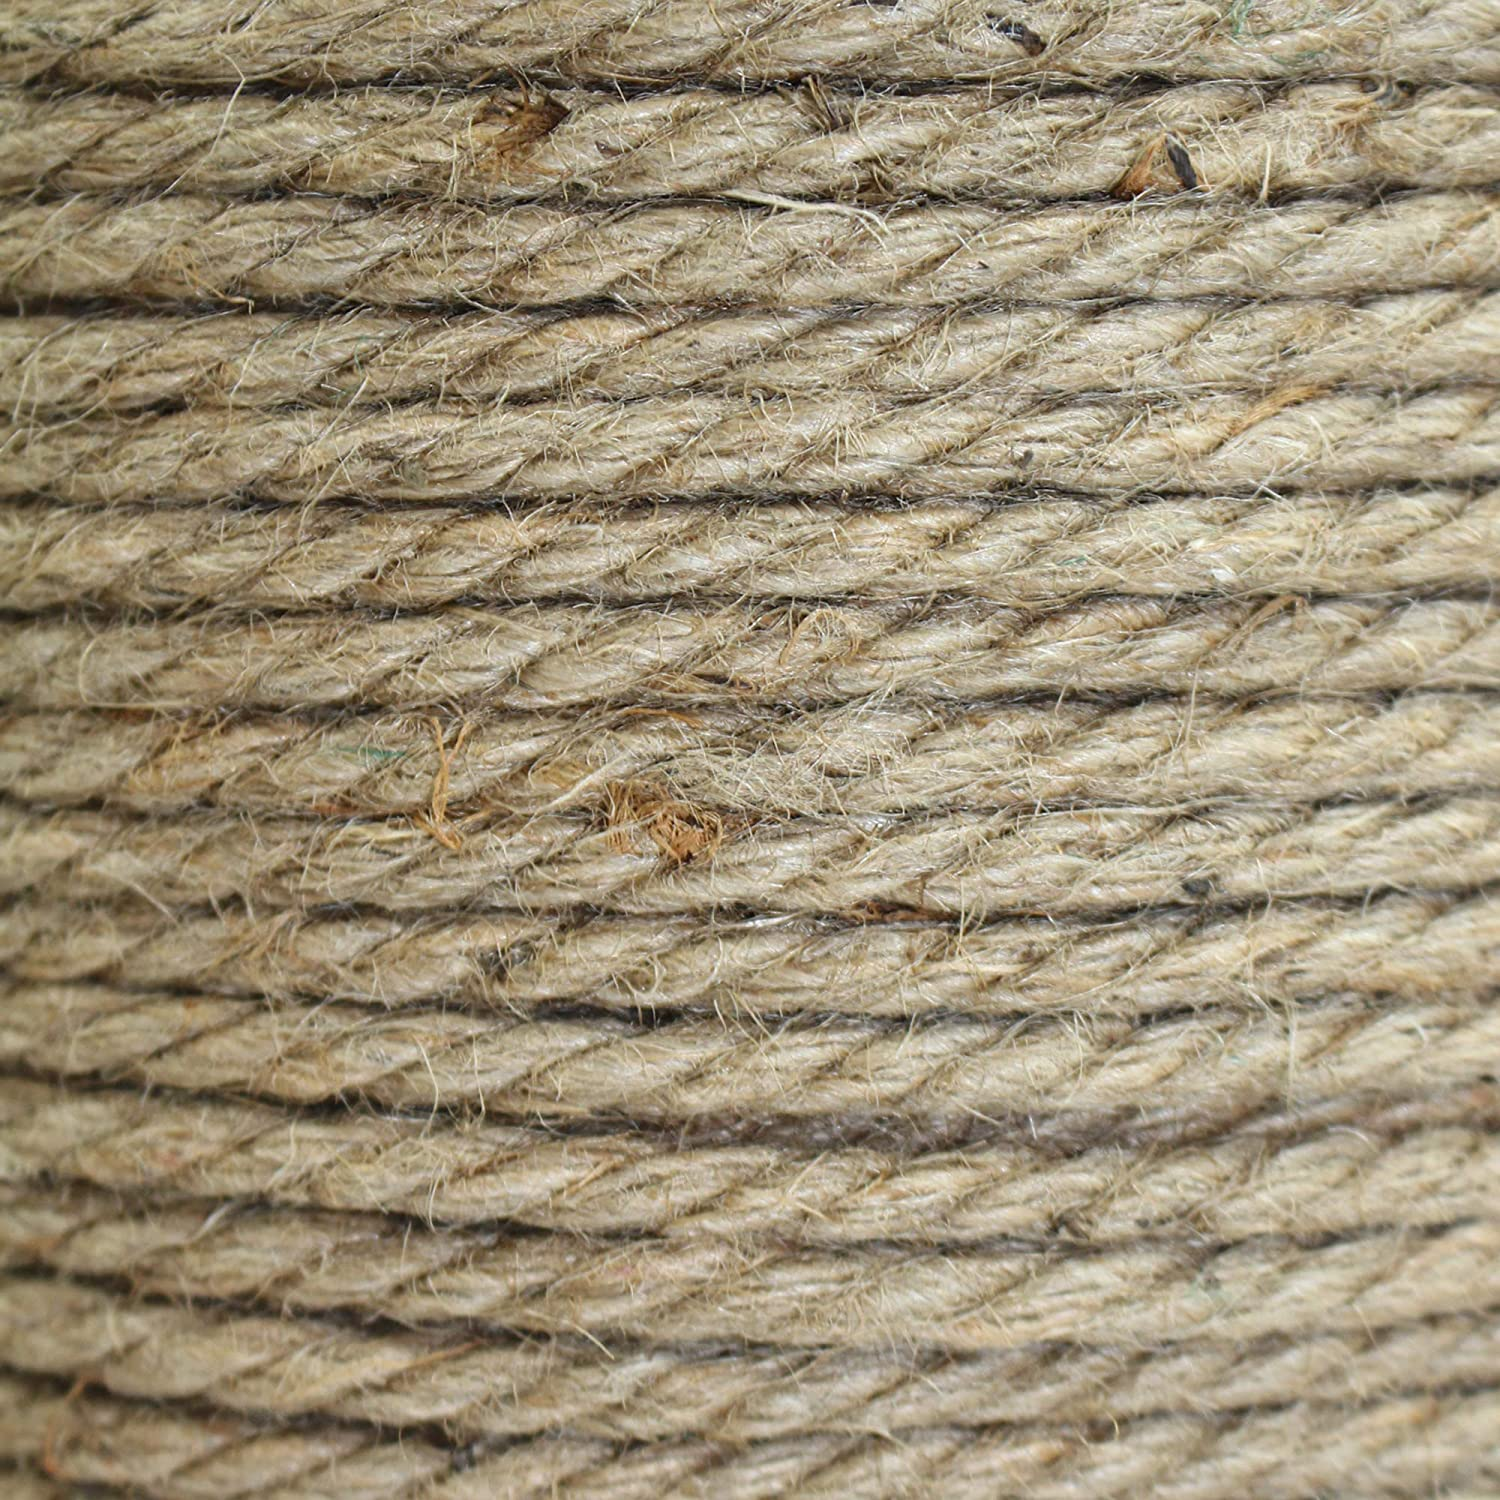 Bailing Packing Twisted Jute Rope Crafts /& Crafting Survival Thick Heavy Duty 3 Strand Jute Ropes 1//2 in x 600 ft Strong All Natural Jute Fibers Home Decor SGT KNOTS Garden /& Gardening